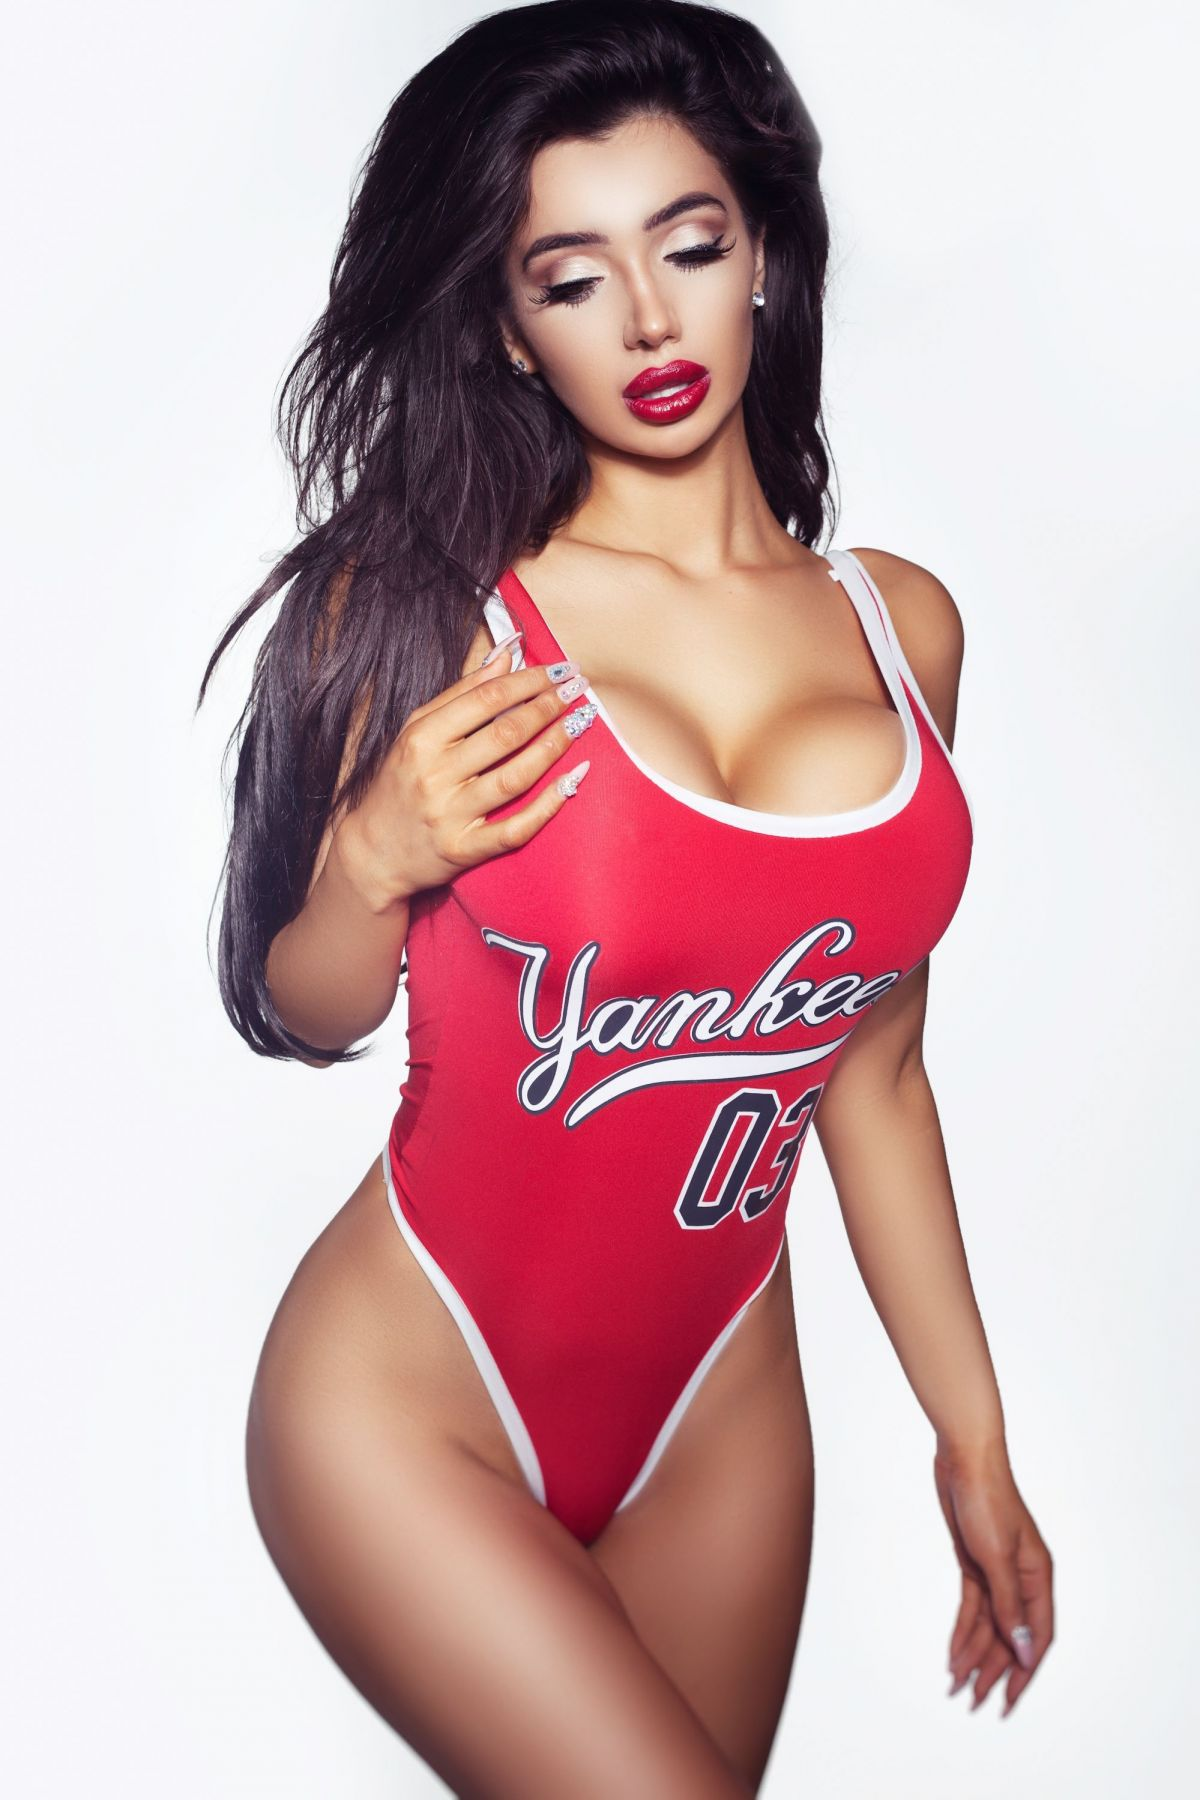 Chloe Khan At Z-Lister Jeany Savage PS